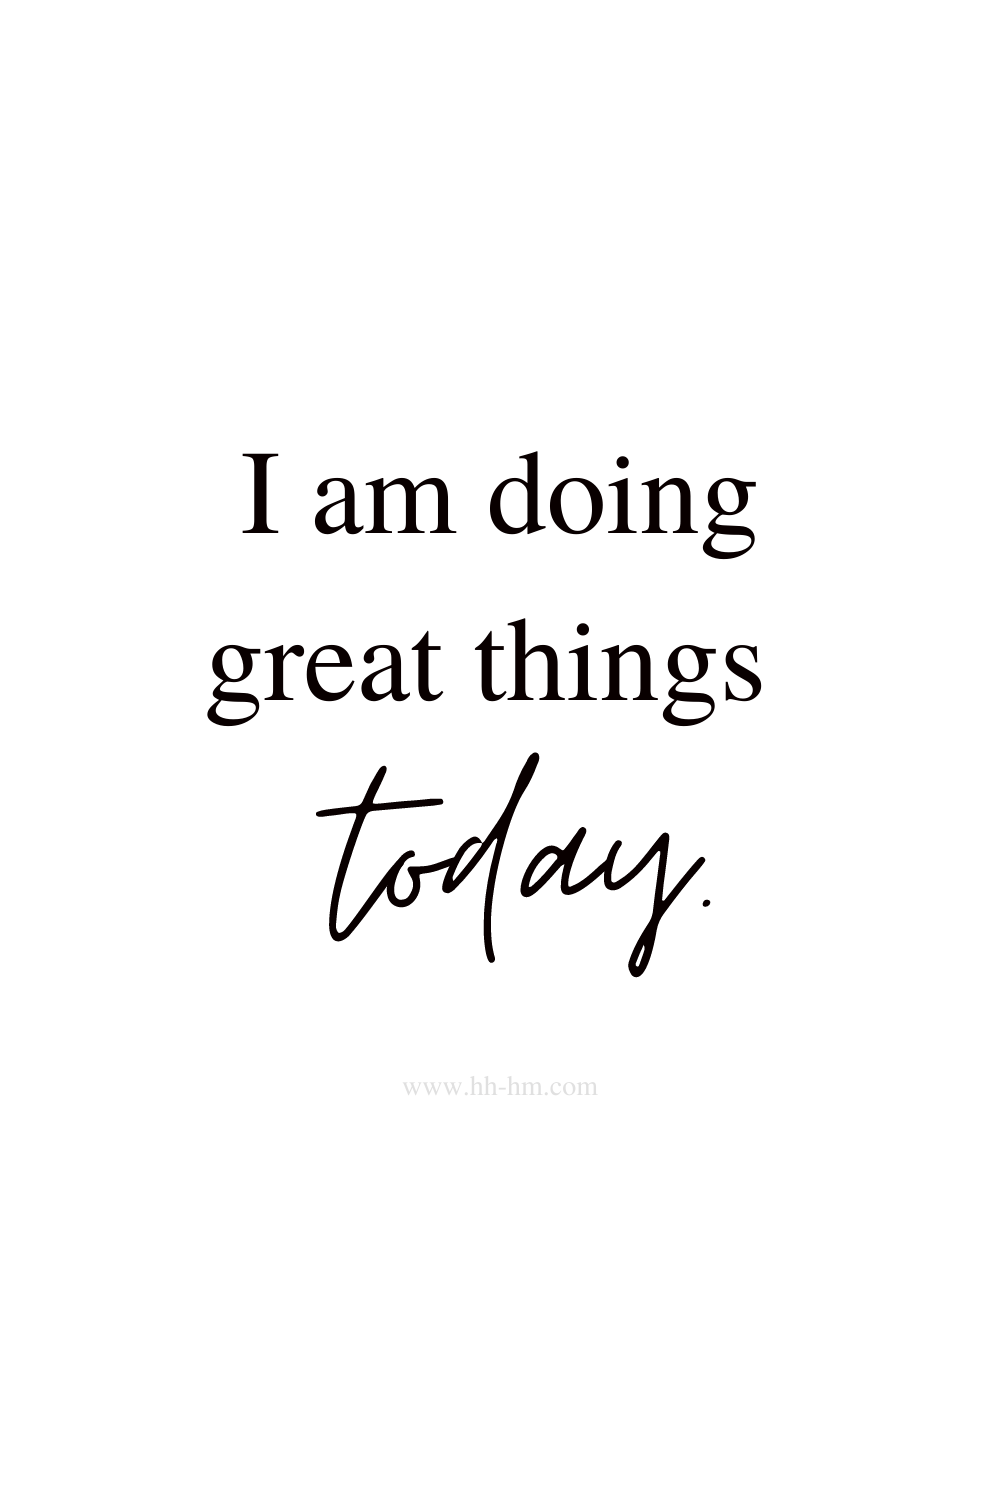 I am doing great things today - morning affirmations for success